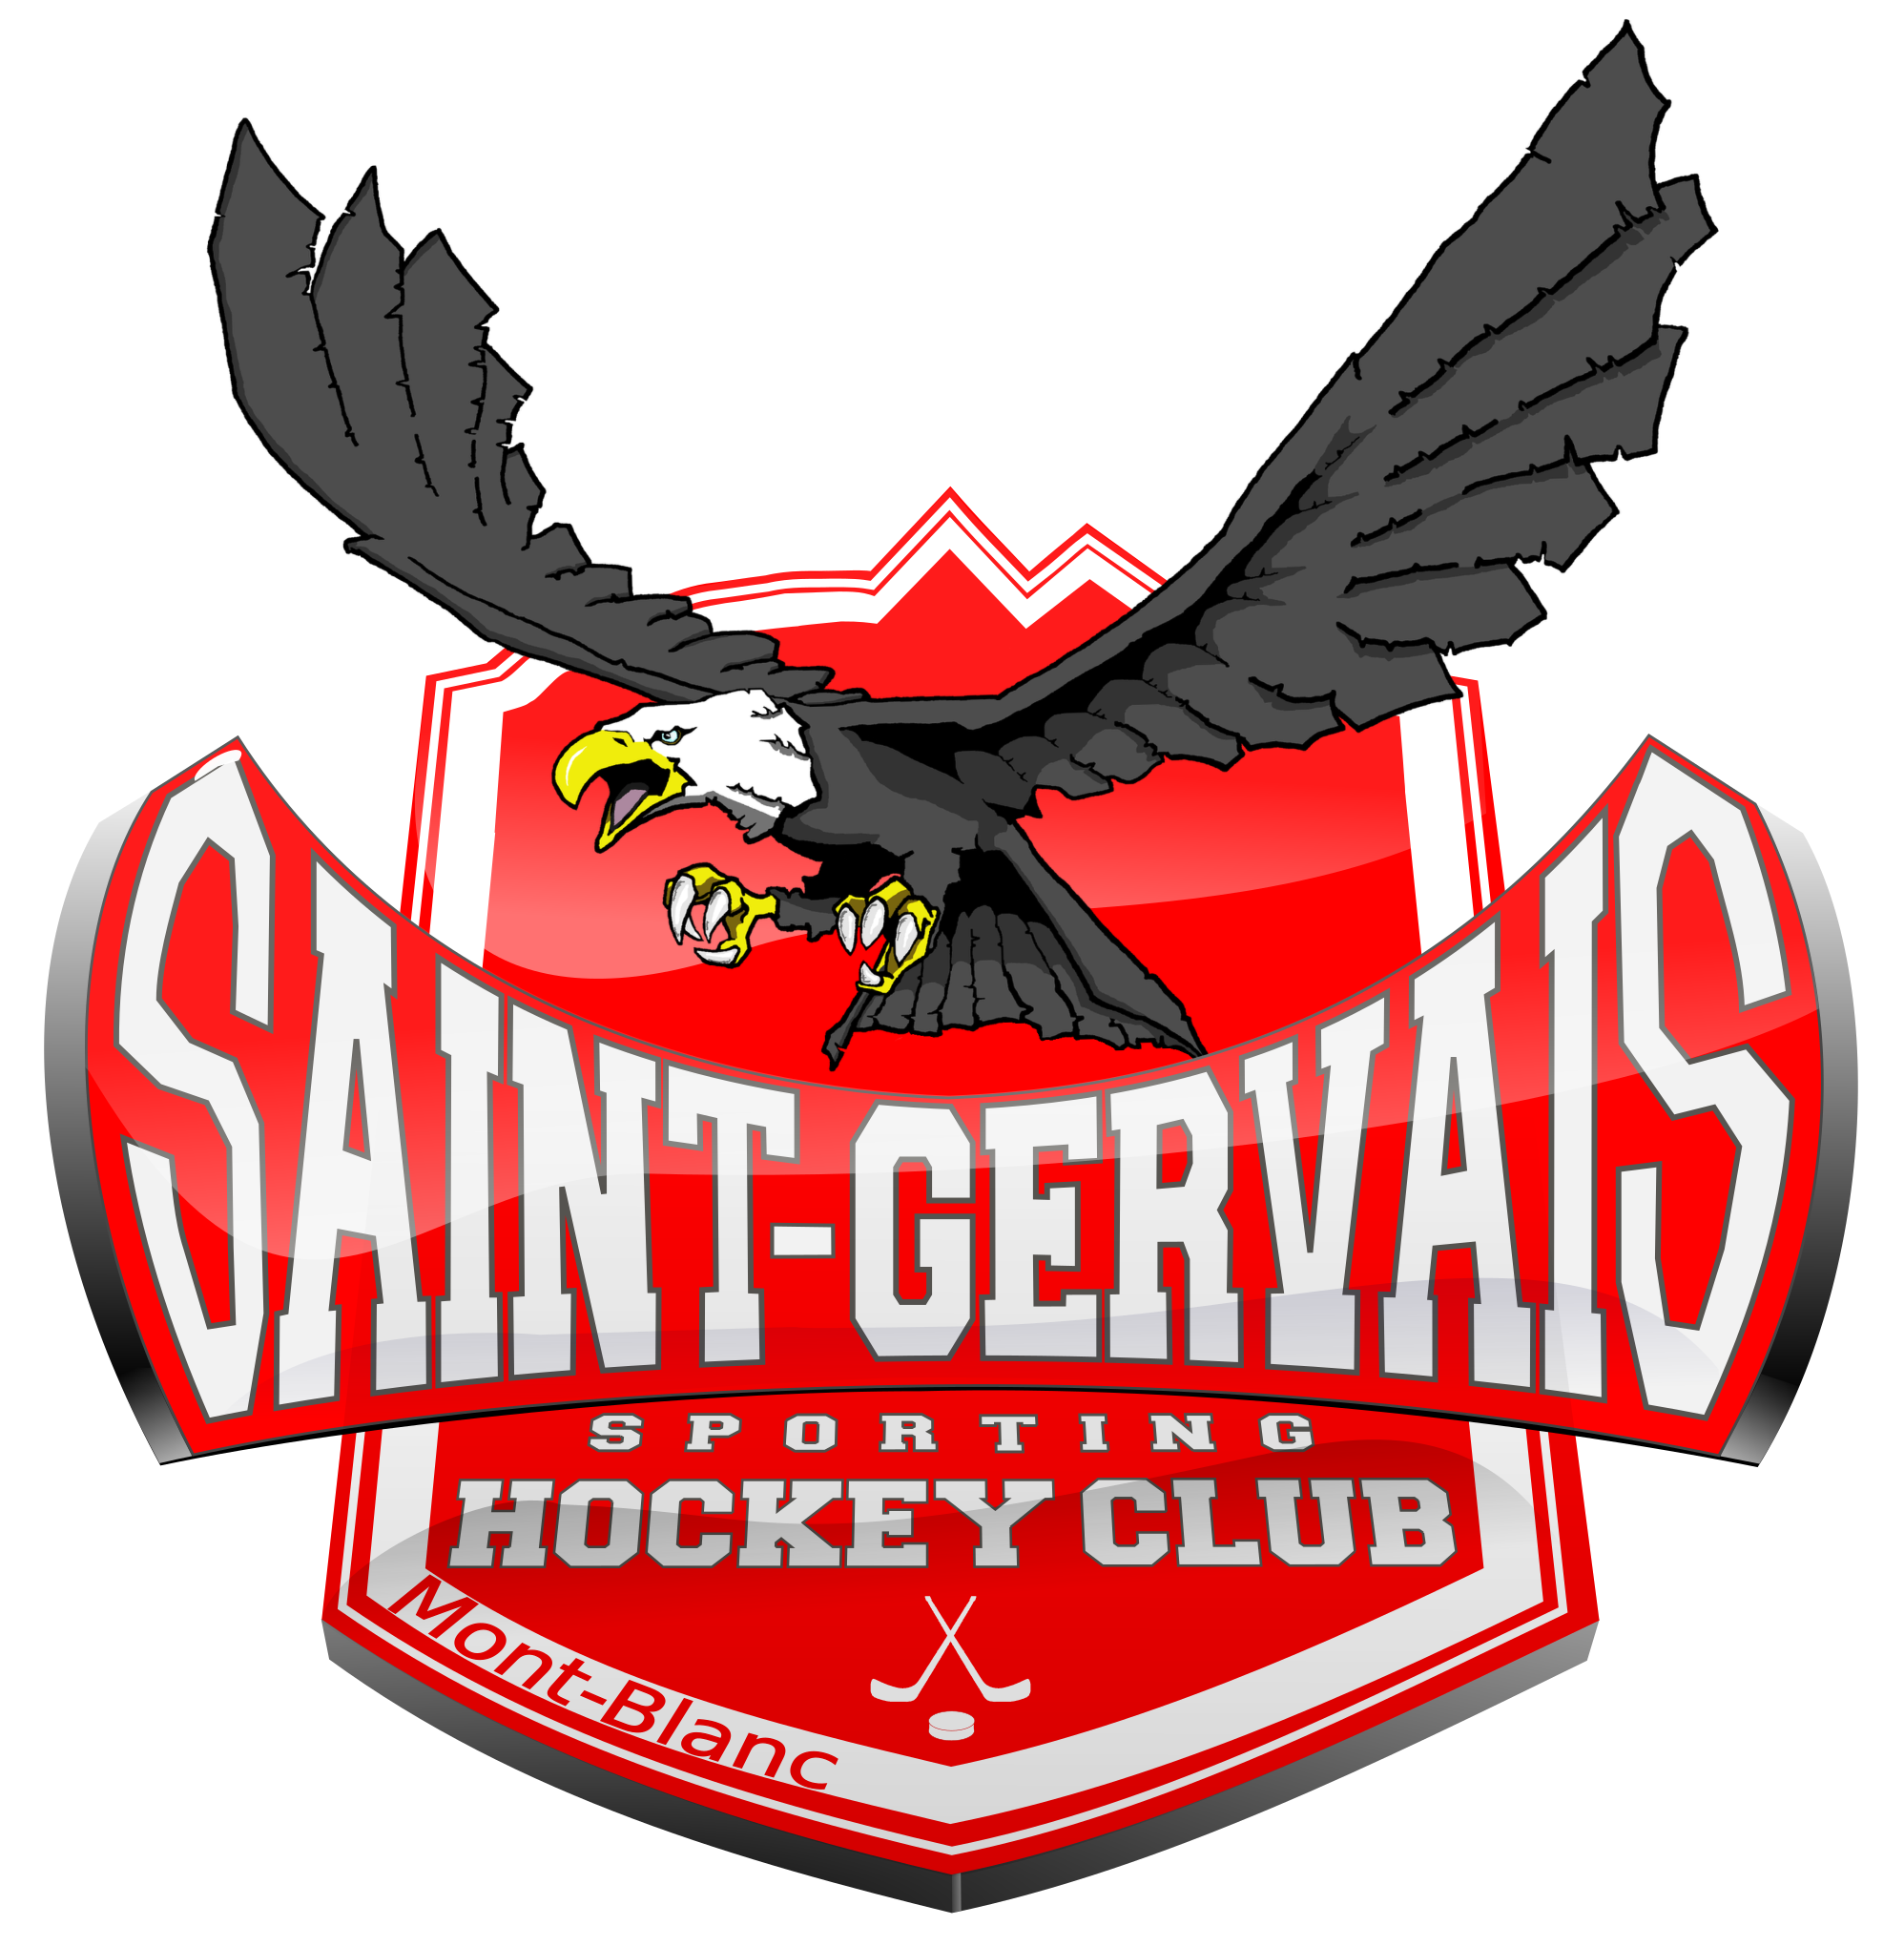 Logo Sporting Hockey Club Saint-Gervais